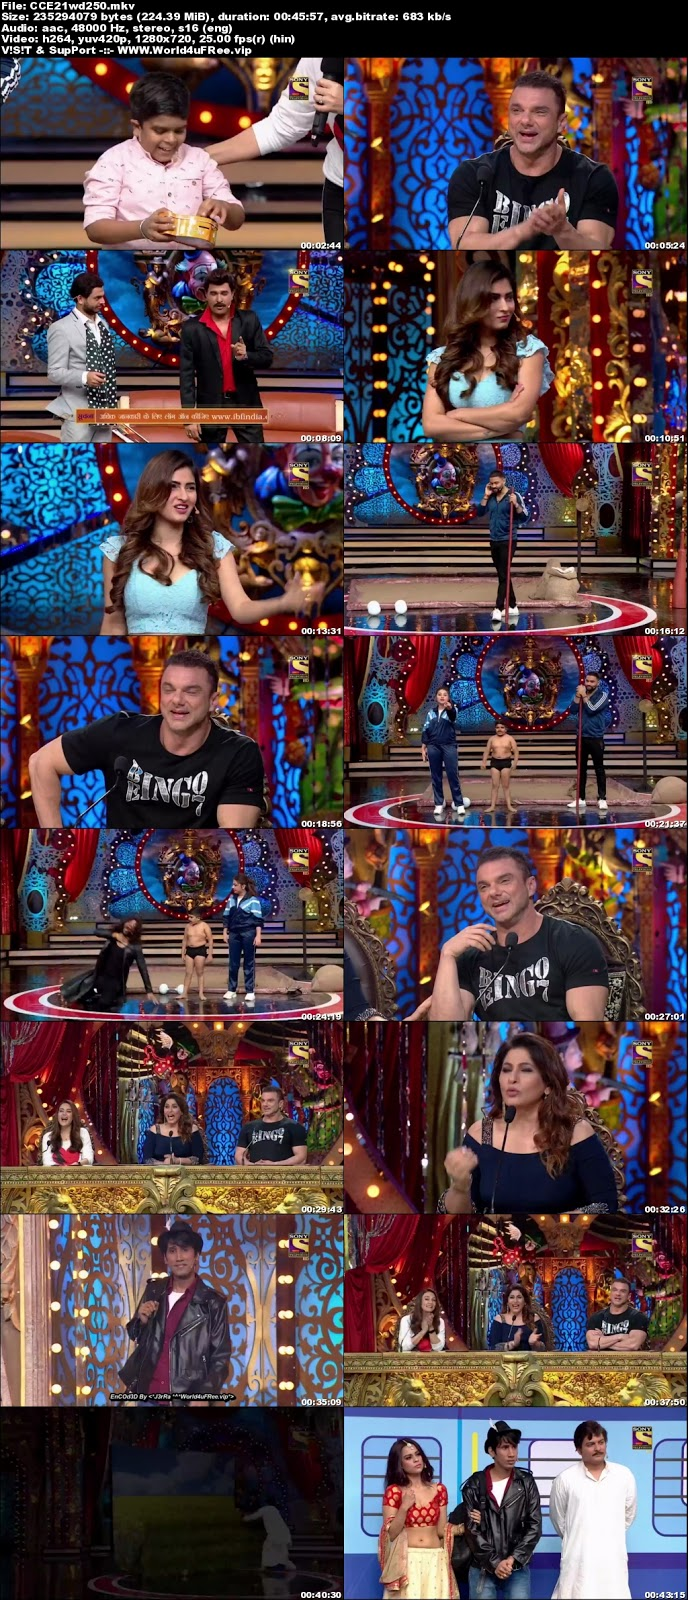 Comedy Circus 2018 Episode 21 720p WEBRip 250mb x264 world4ufree.fun tv show Comedy Circus 2018 hindi tv show Comedy Circus 2018 Season 1 sony tv show compressed small size free download or watch online at world4ufree.fun